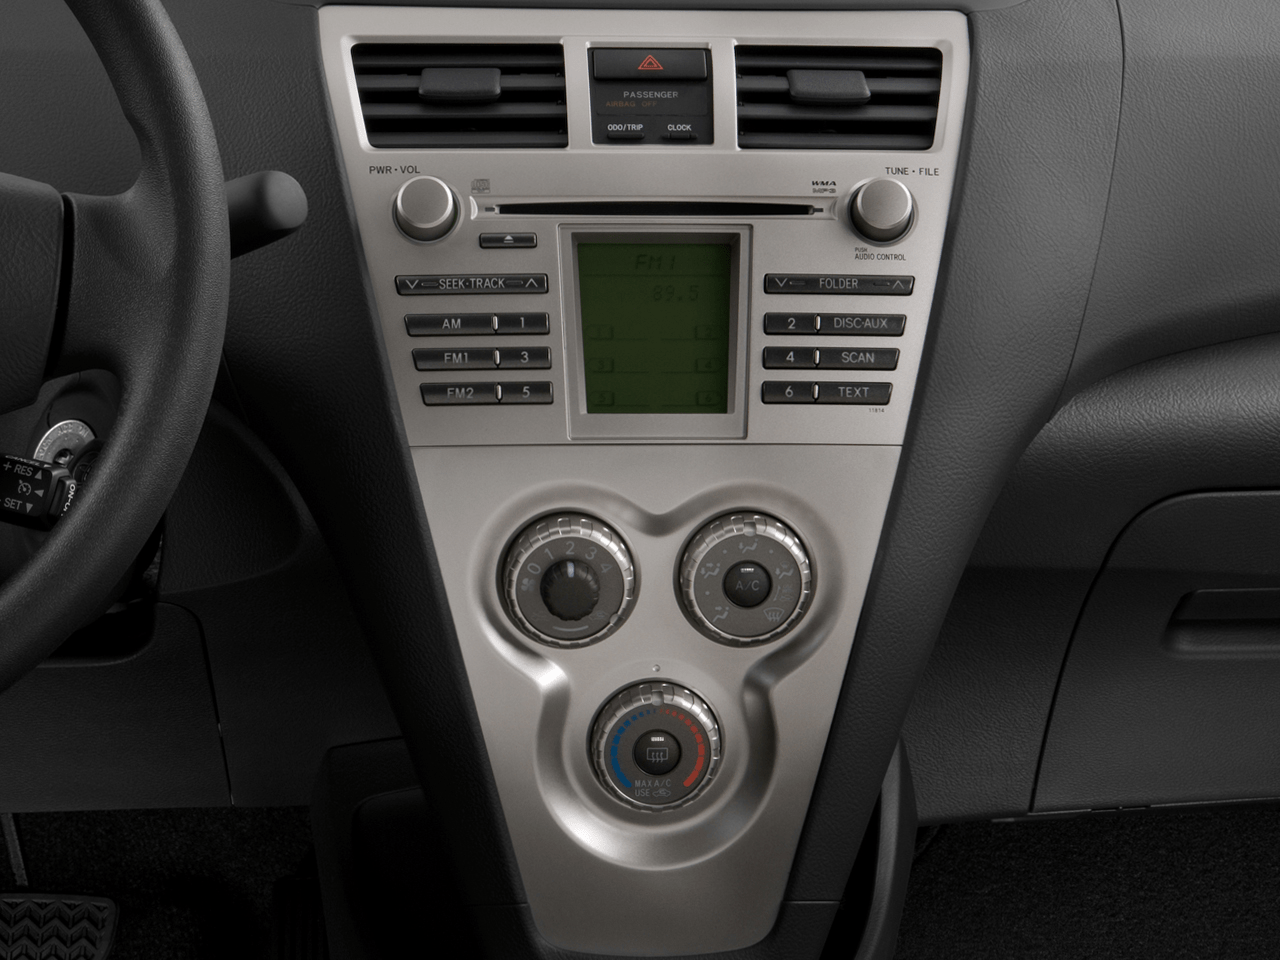 2009 toyota yaris radio wiring diagram central heating 2 pumps 2008 compact sedan review